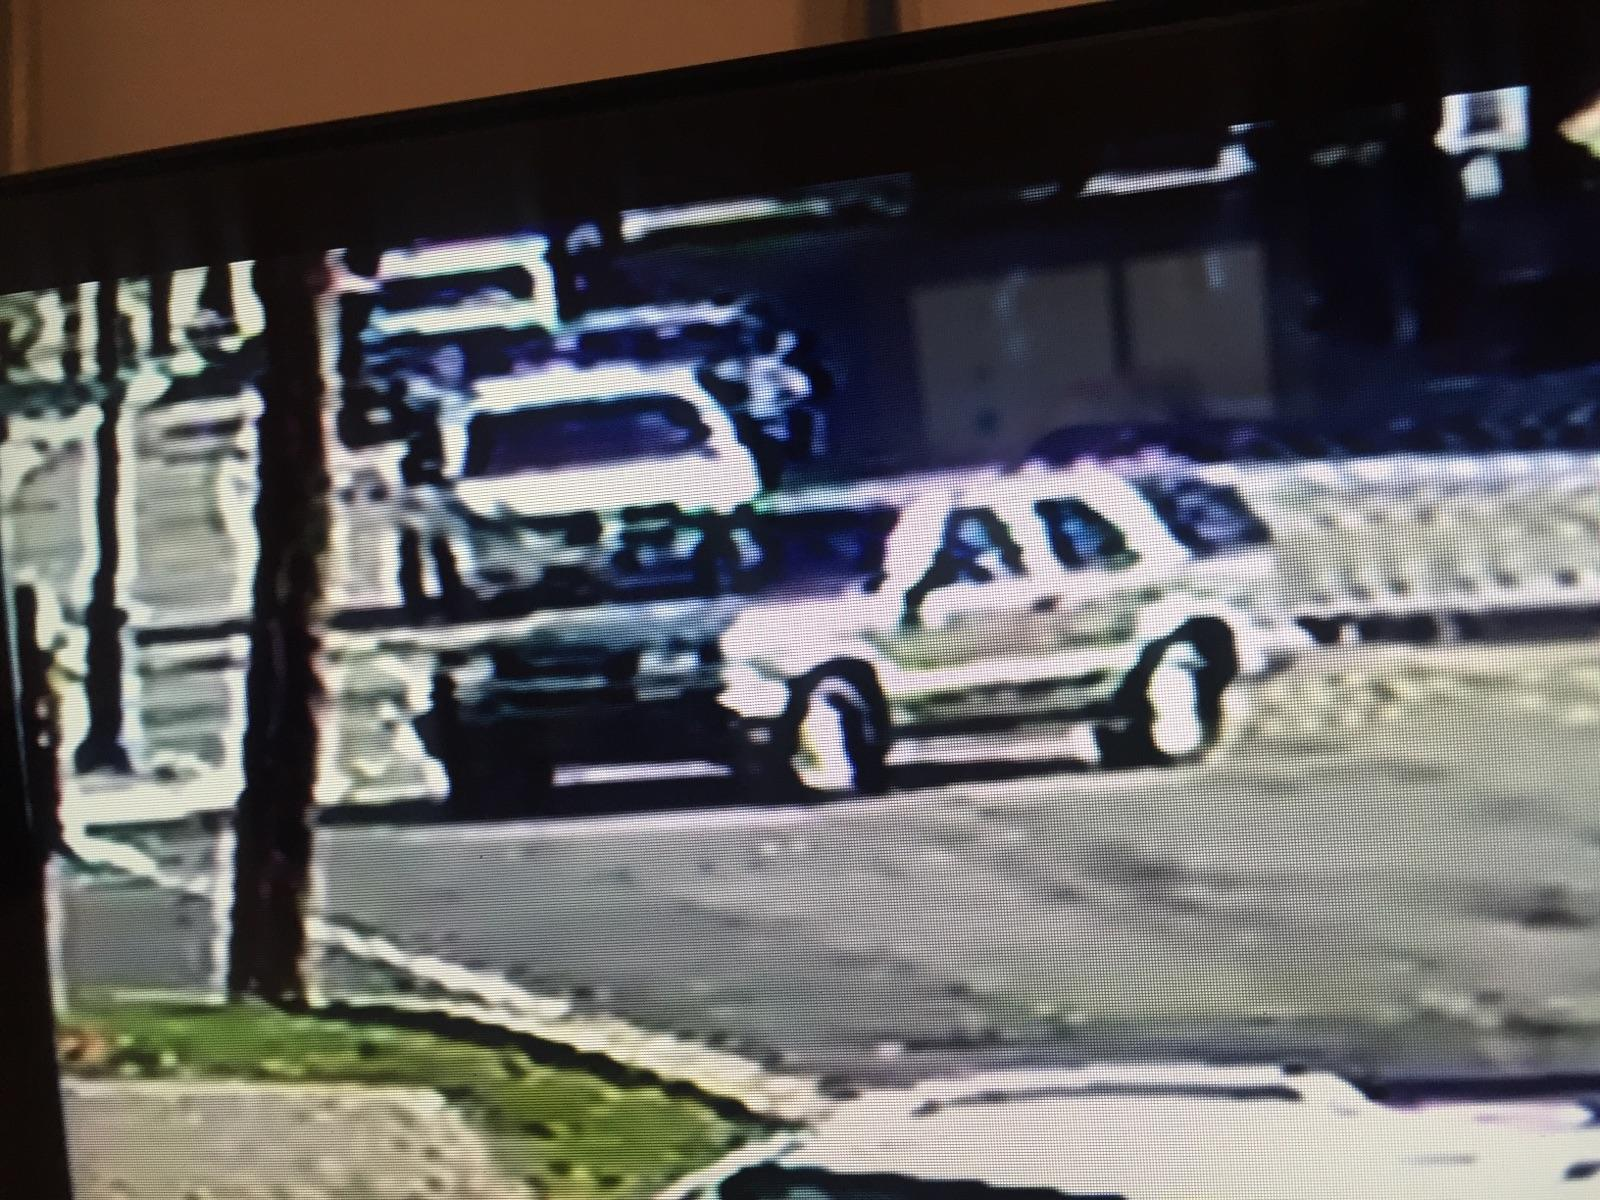 07ff479859149b56157c_Provident_Bank_Fanwood_Suspect_Vehicle.jpg